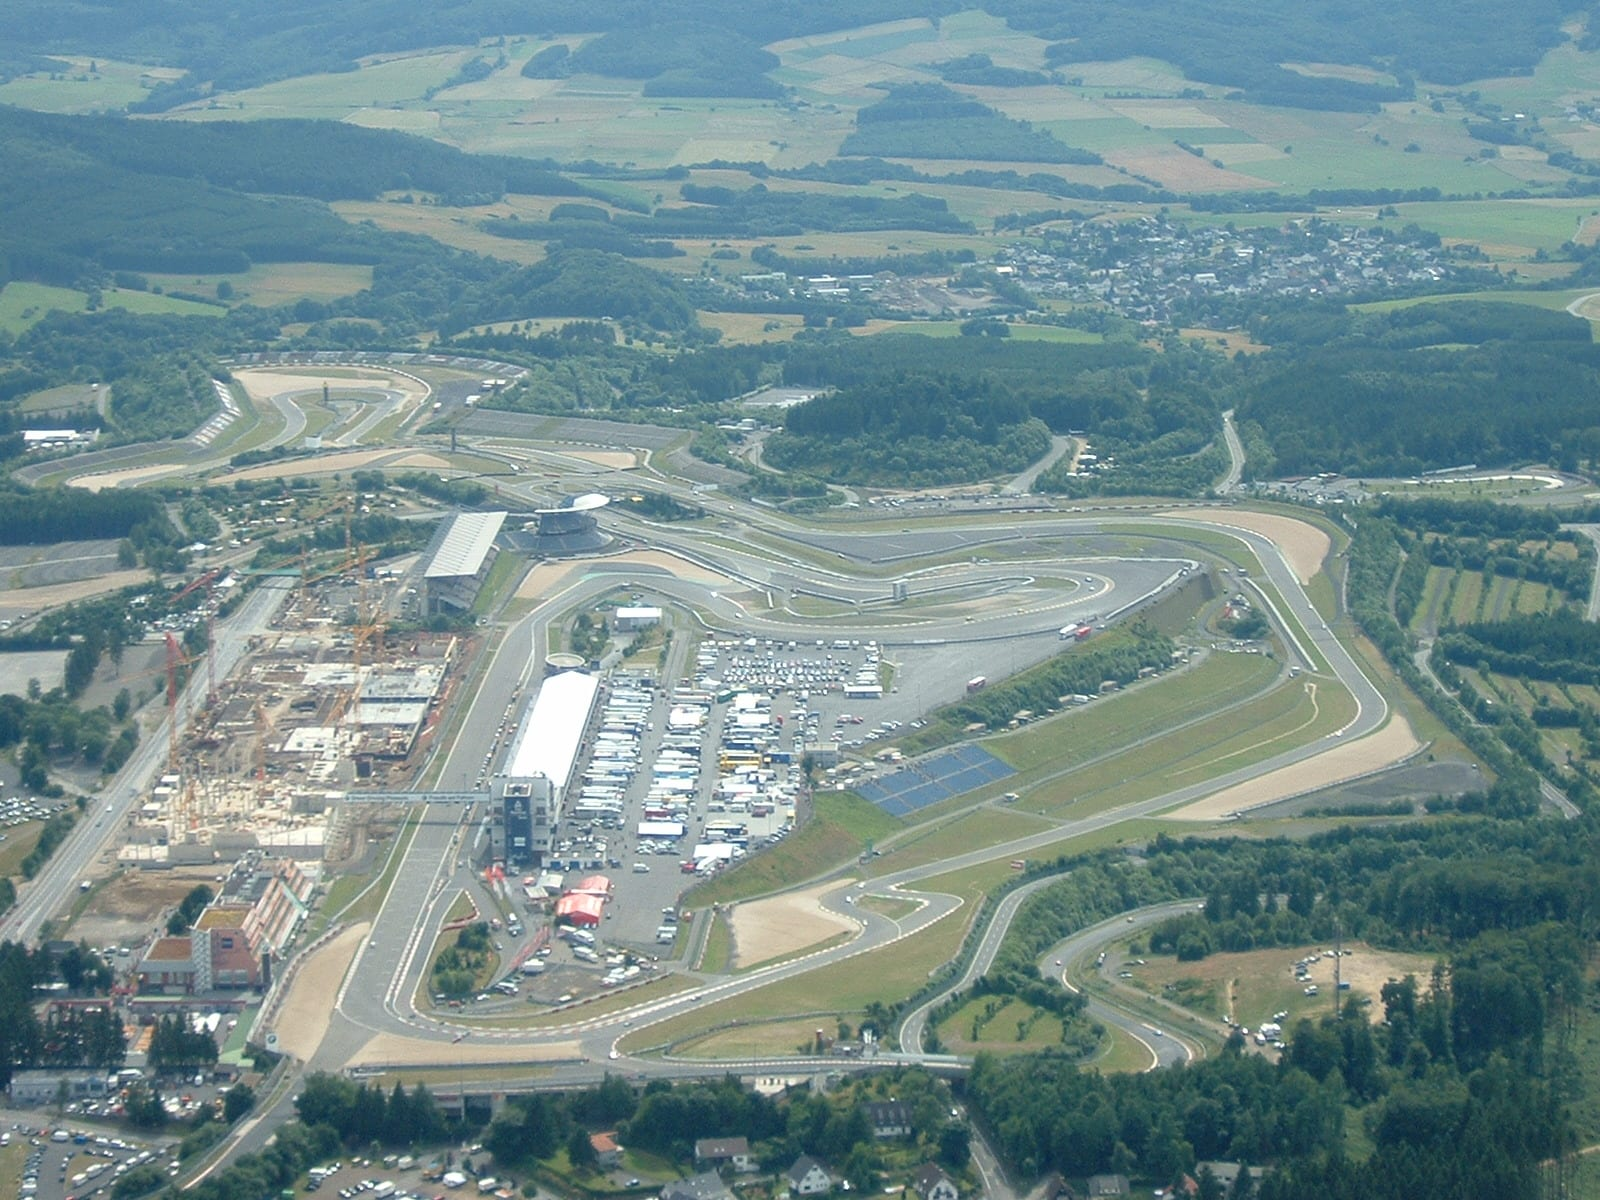 Race Tracks in Europe